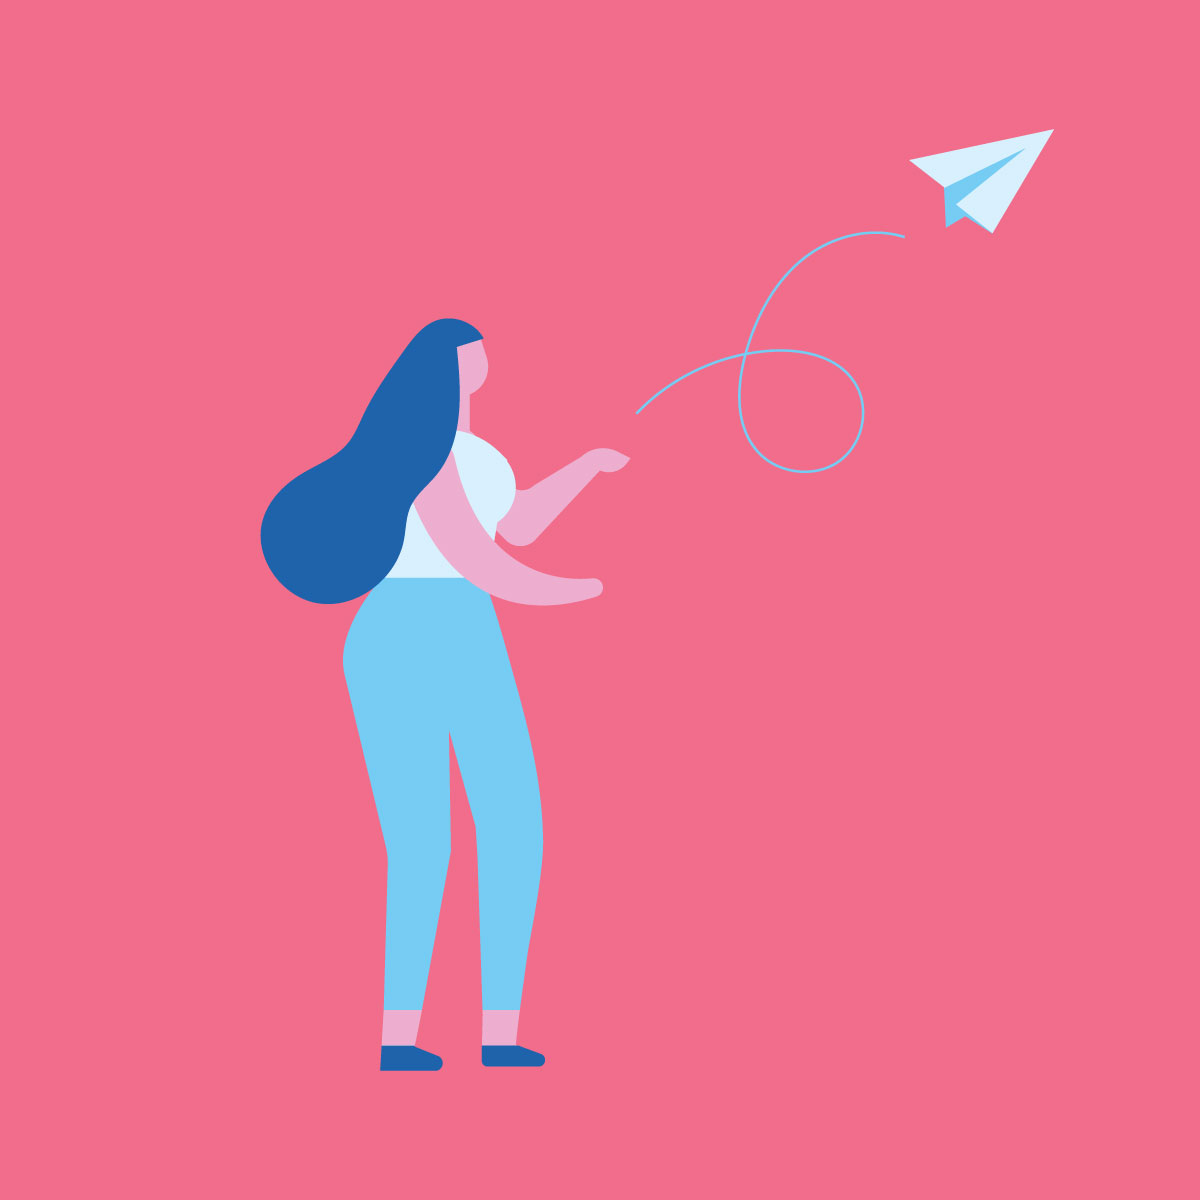 Illustration of woman with long hair throwing a paper airplane into the air.